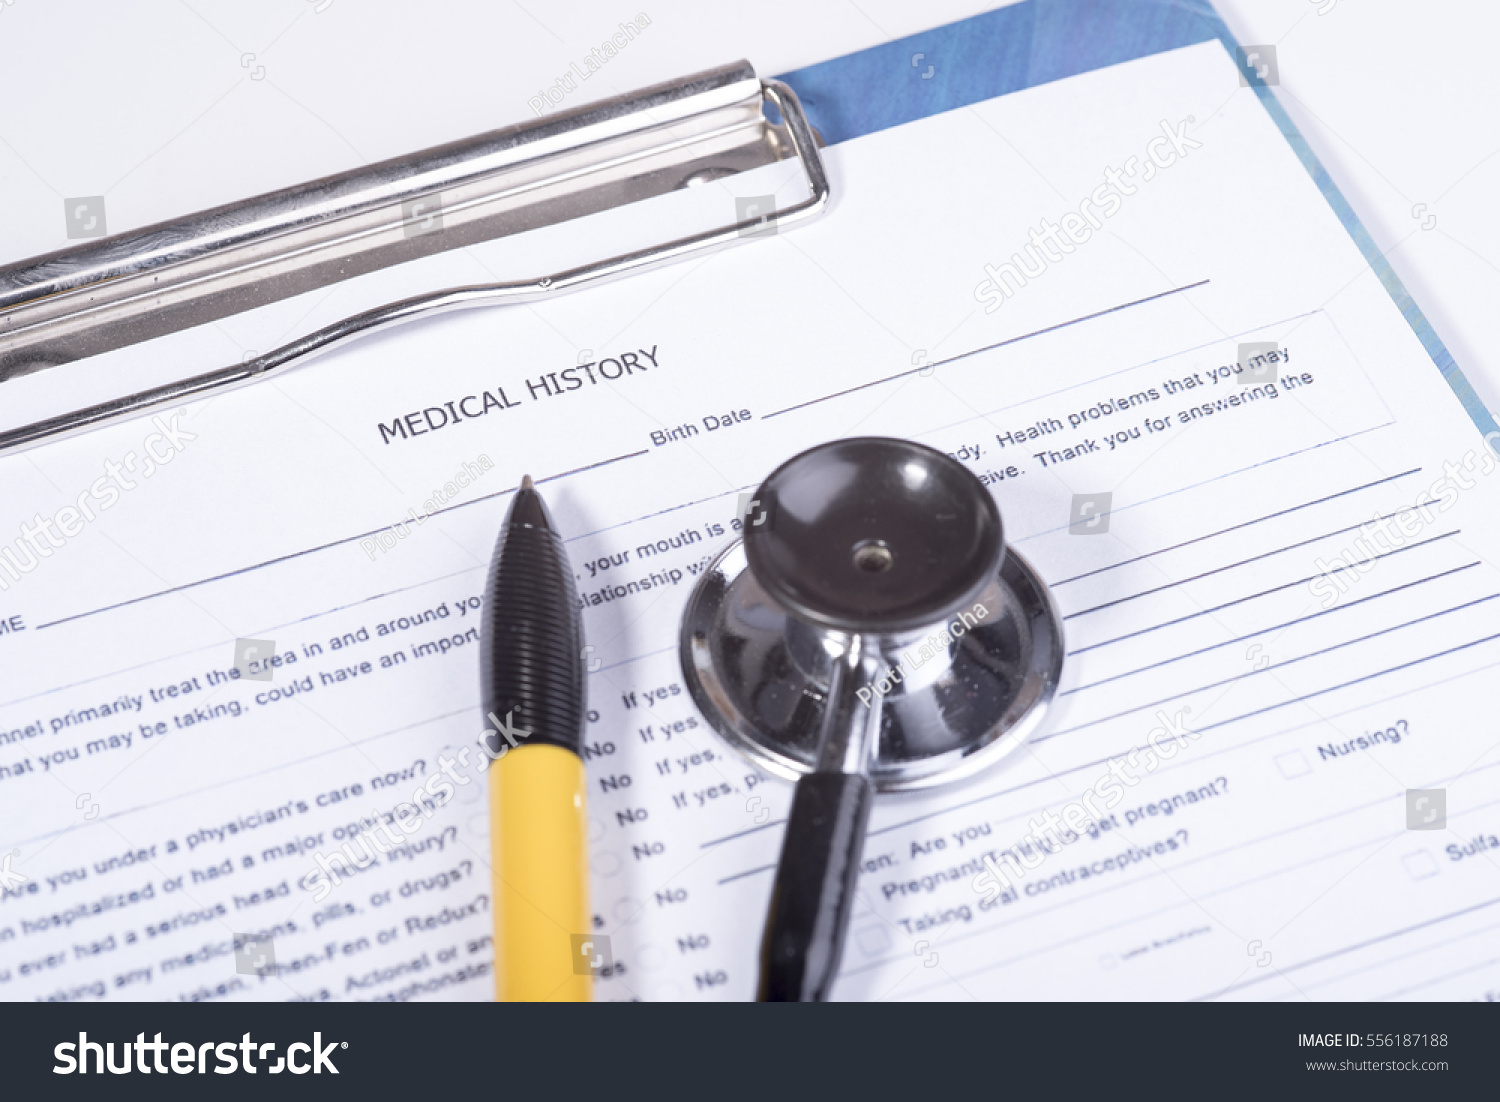 medical history questionnaire の写真素材 今すぐ編集 556187188